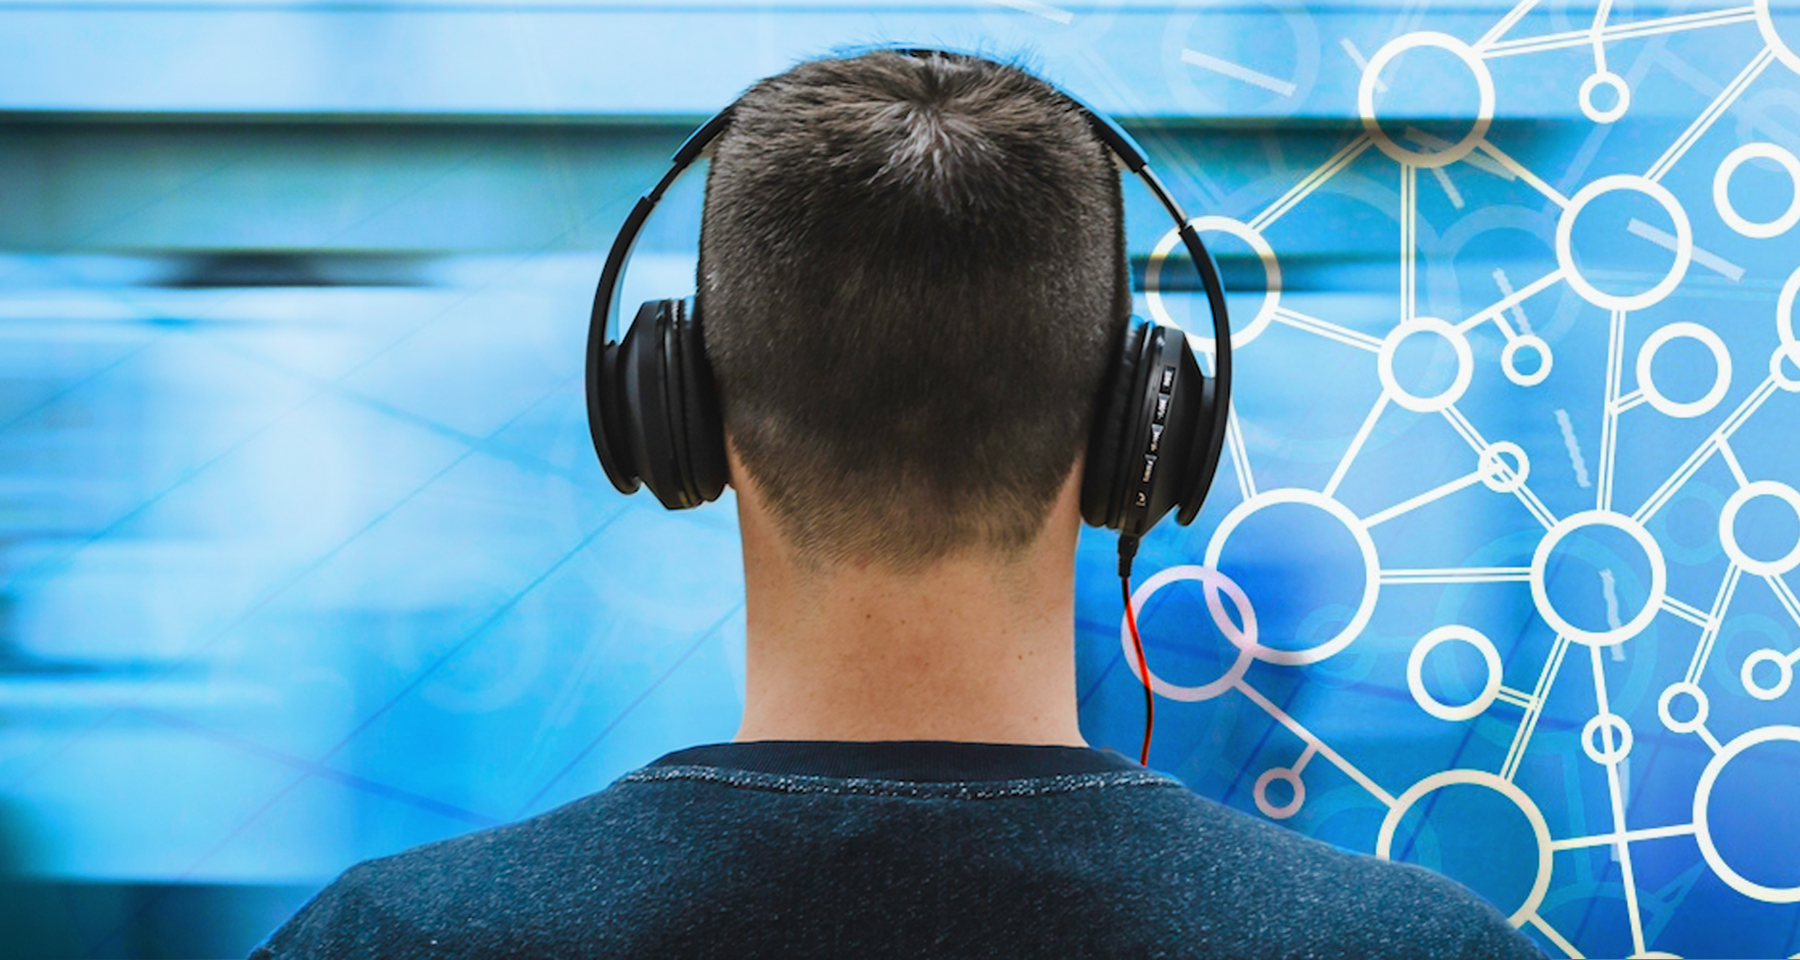 12 content ideas for podcasts